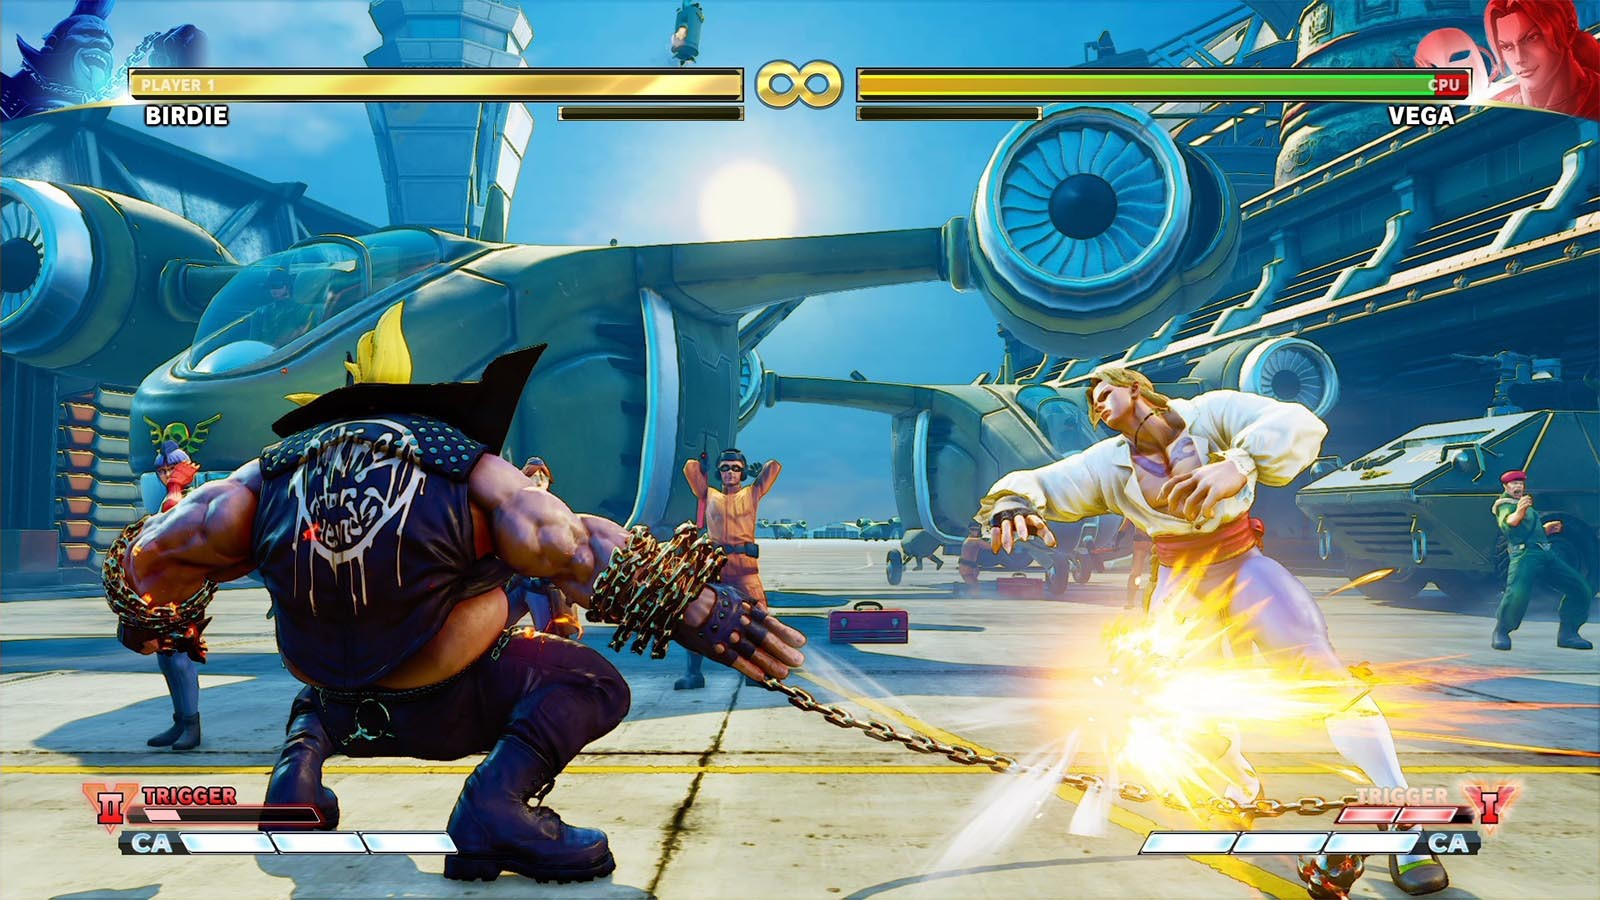 download sf5 ps4 data edition arcade save